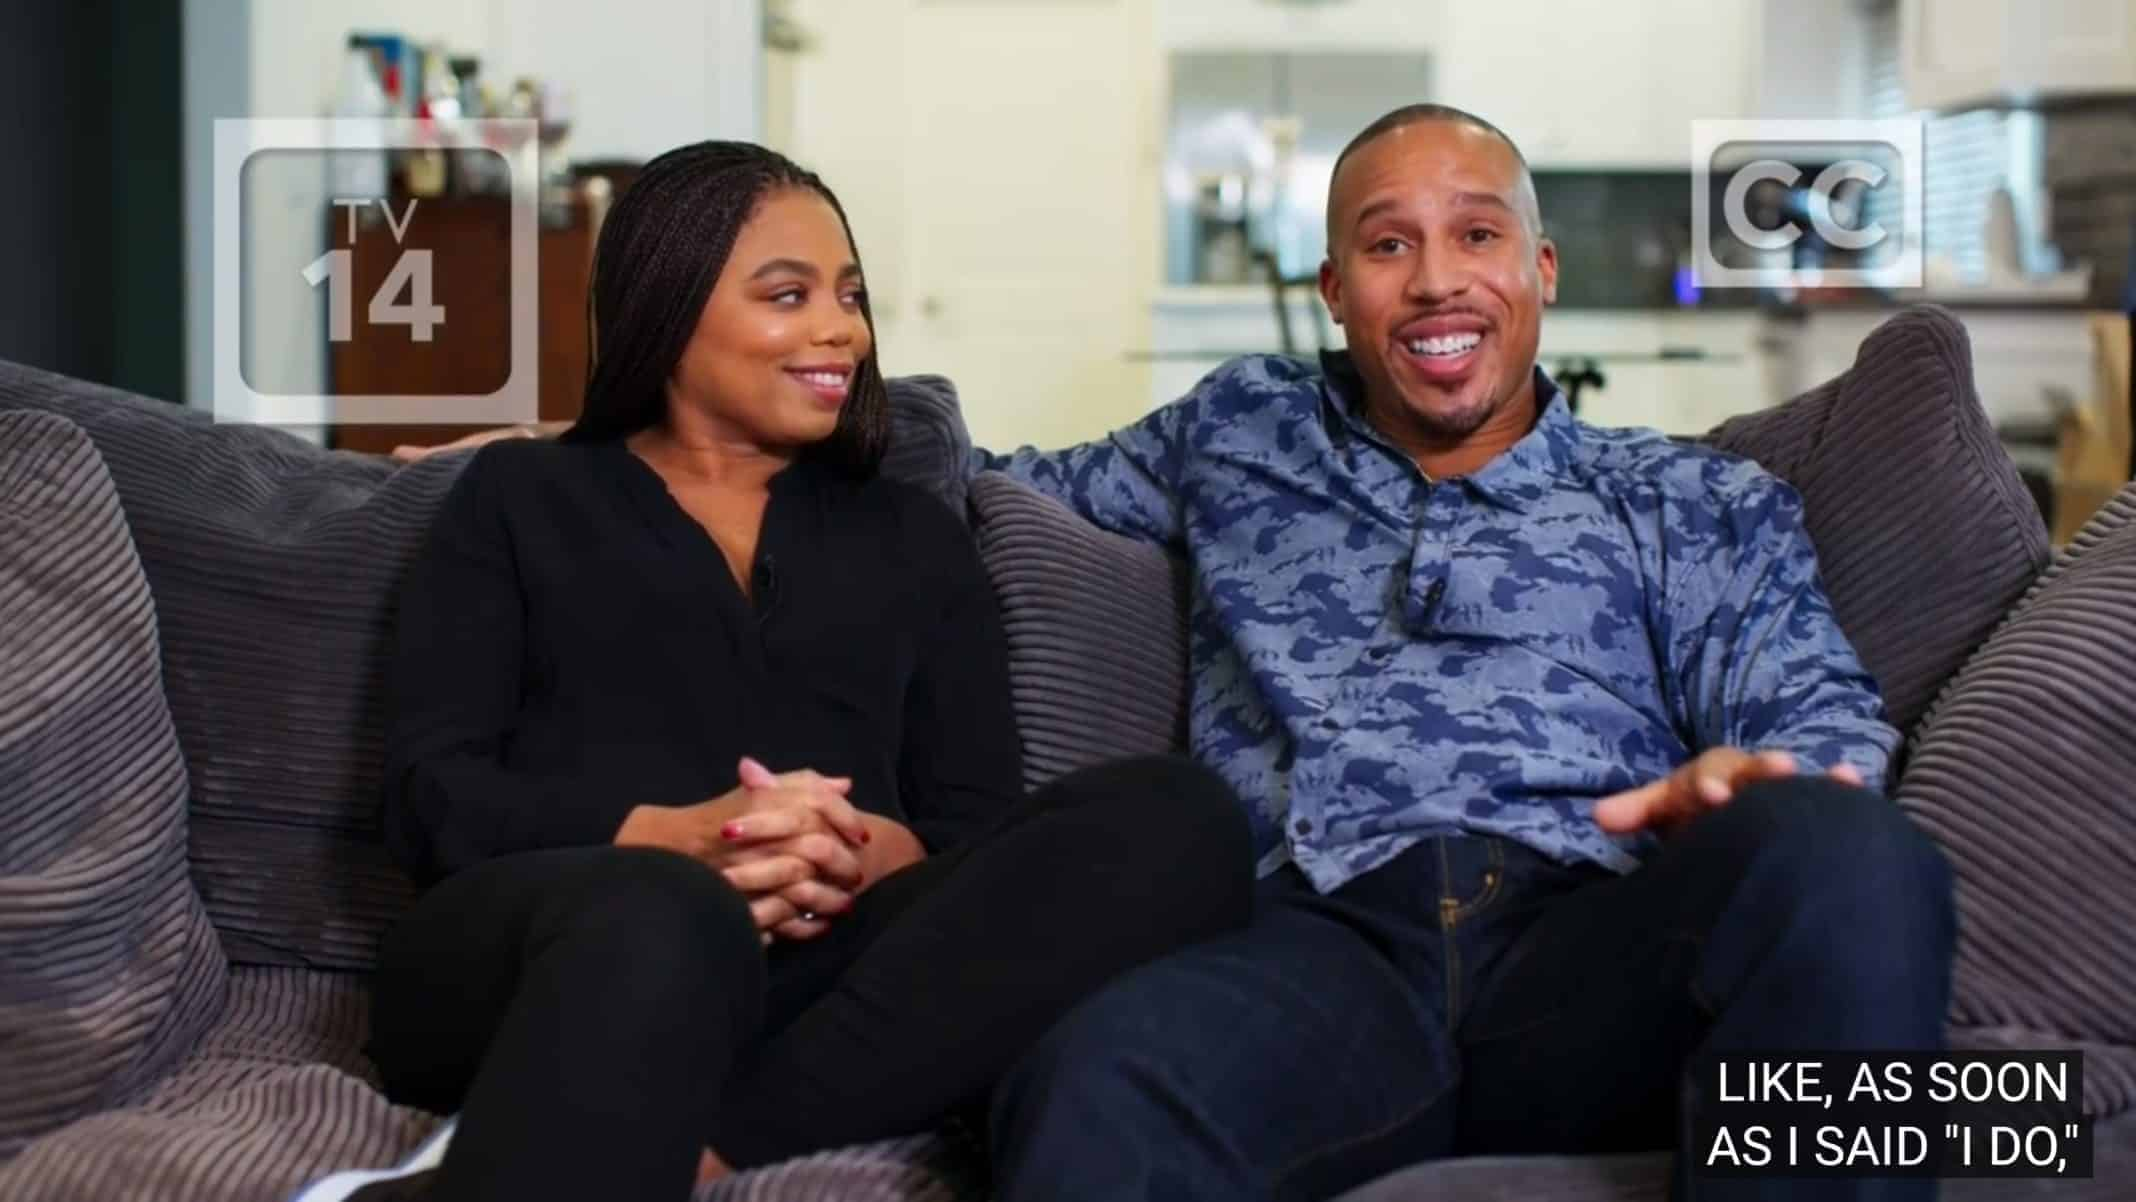 Jemele Hill and Ian Wallace talking about their relationship.